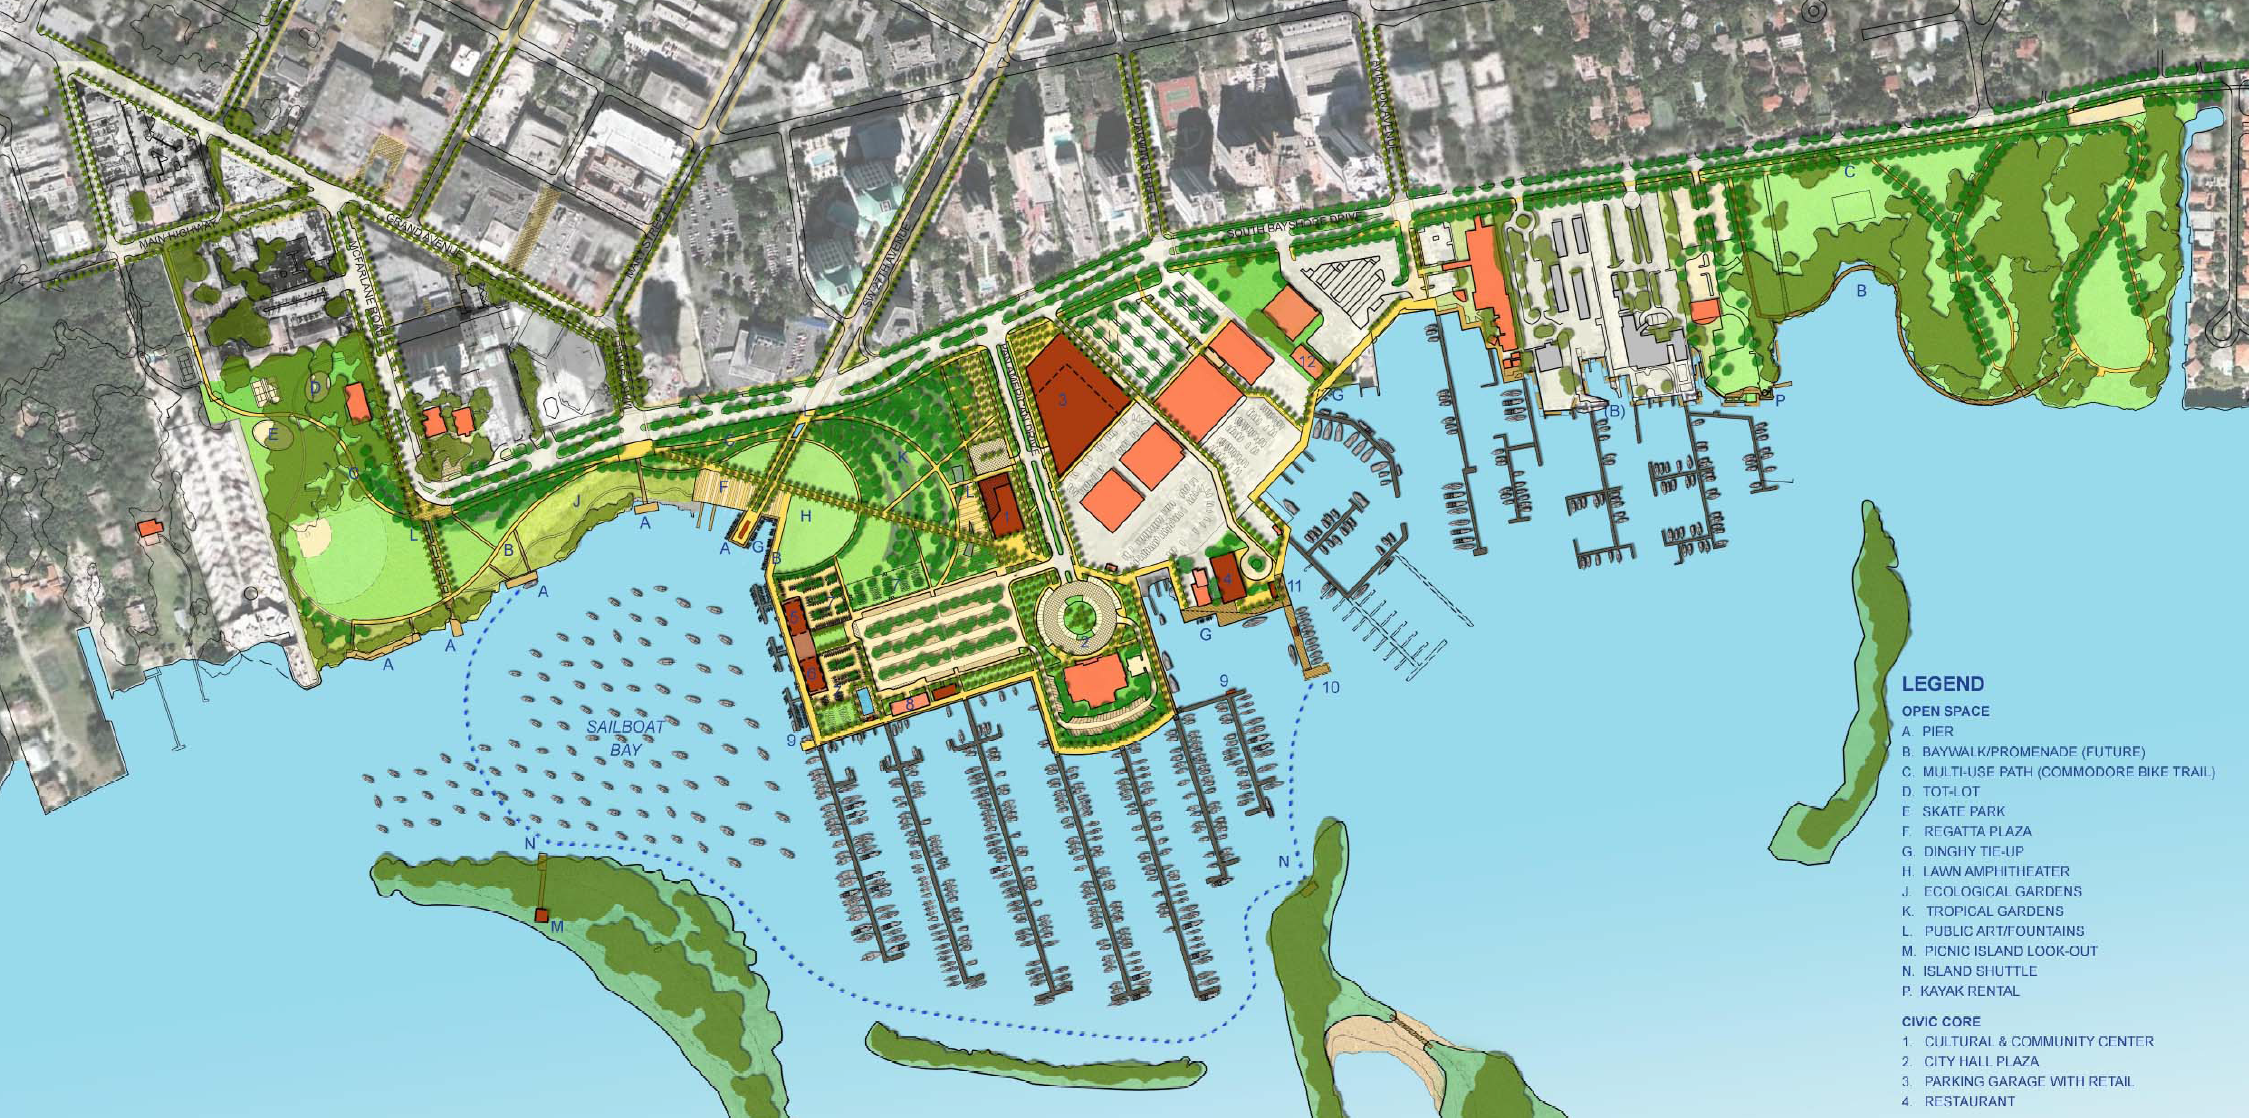 Approved Coconut Grove Waterfront Master Plan